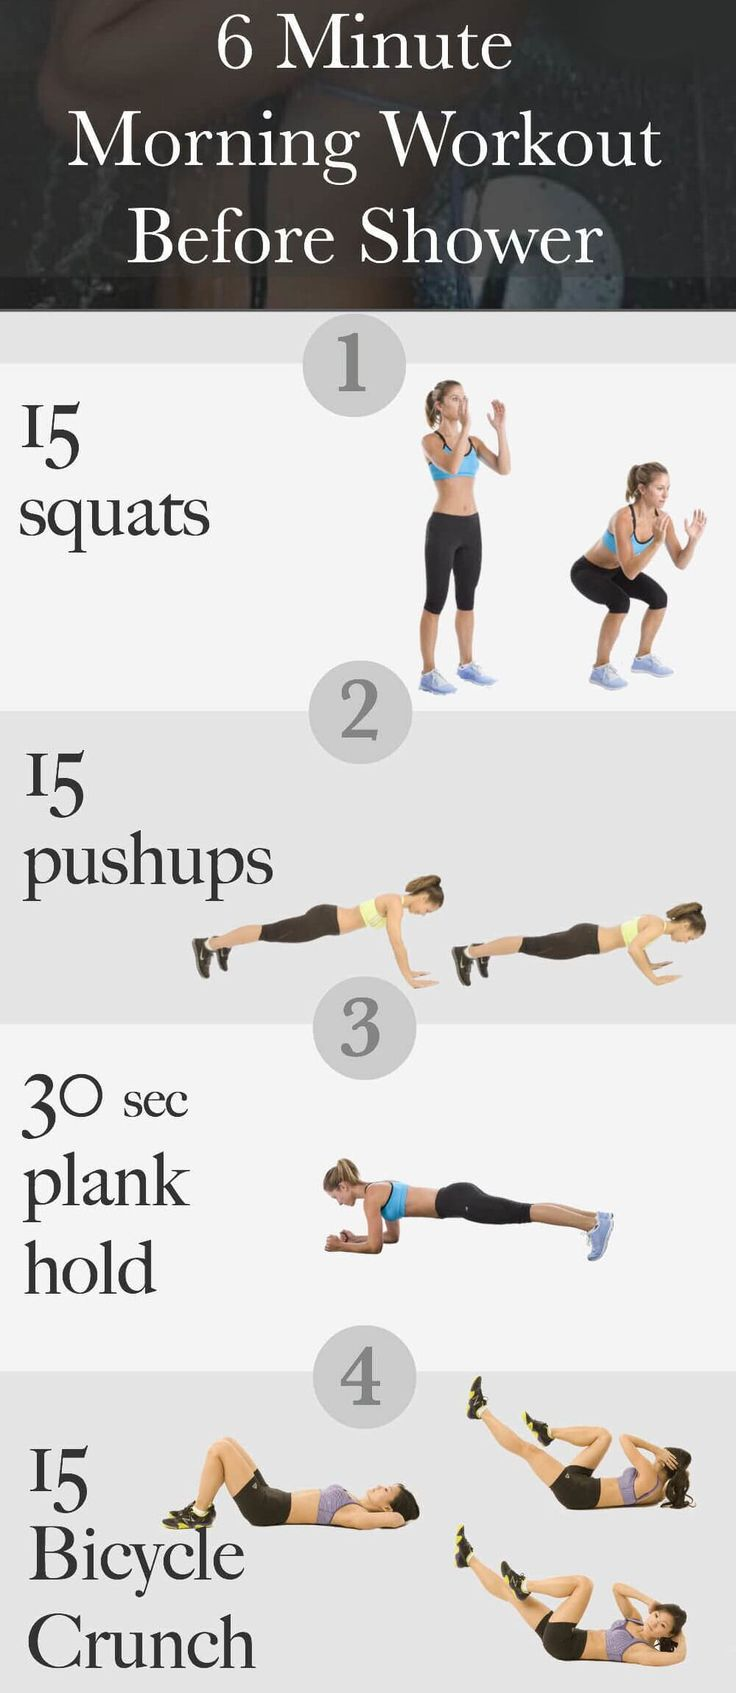 6 Minute Workout Before Your Shower Pictures, Photos, and Images for Facebook, Tumblr, Pinterest, and Twitter